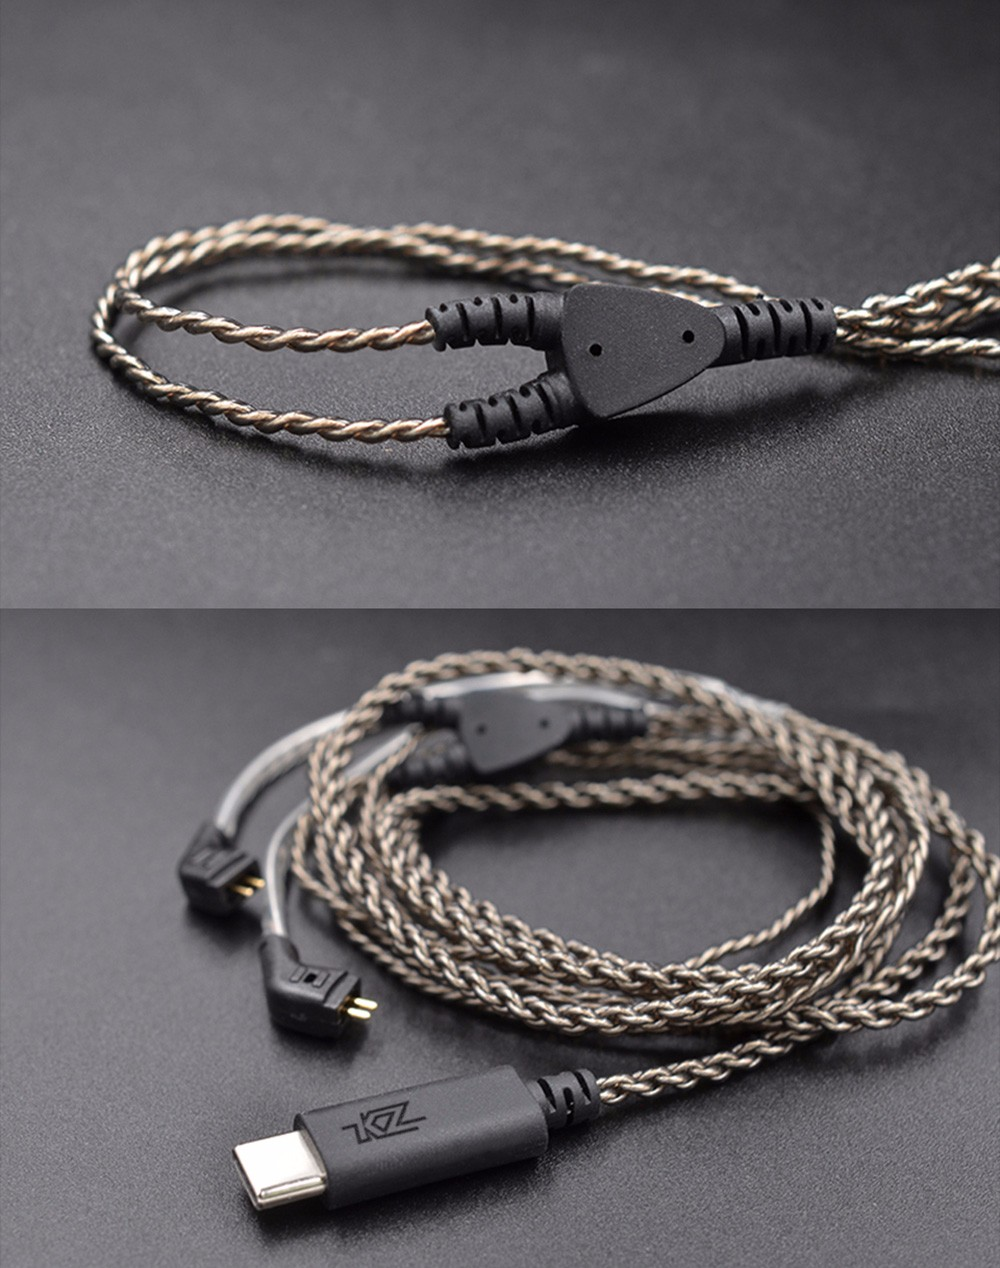 Original Kz Type C 075mm Digital Decoding Ofc Upgrade Cable 901 Kabel Bluetooth Module Knowledge Zenith Zs3 Zs5 Zs6 Zst Silver Plated For